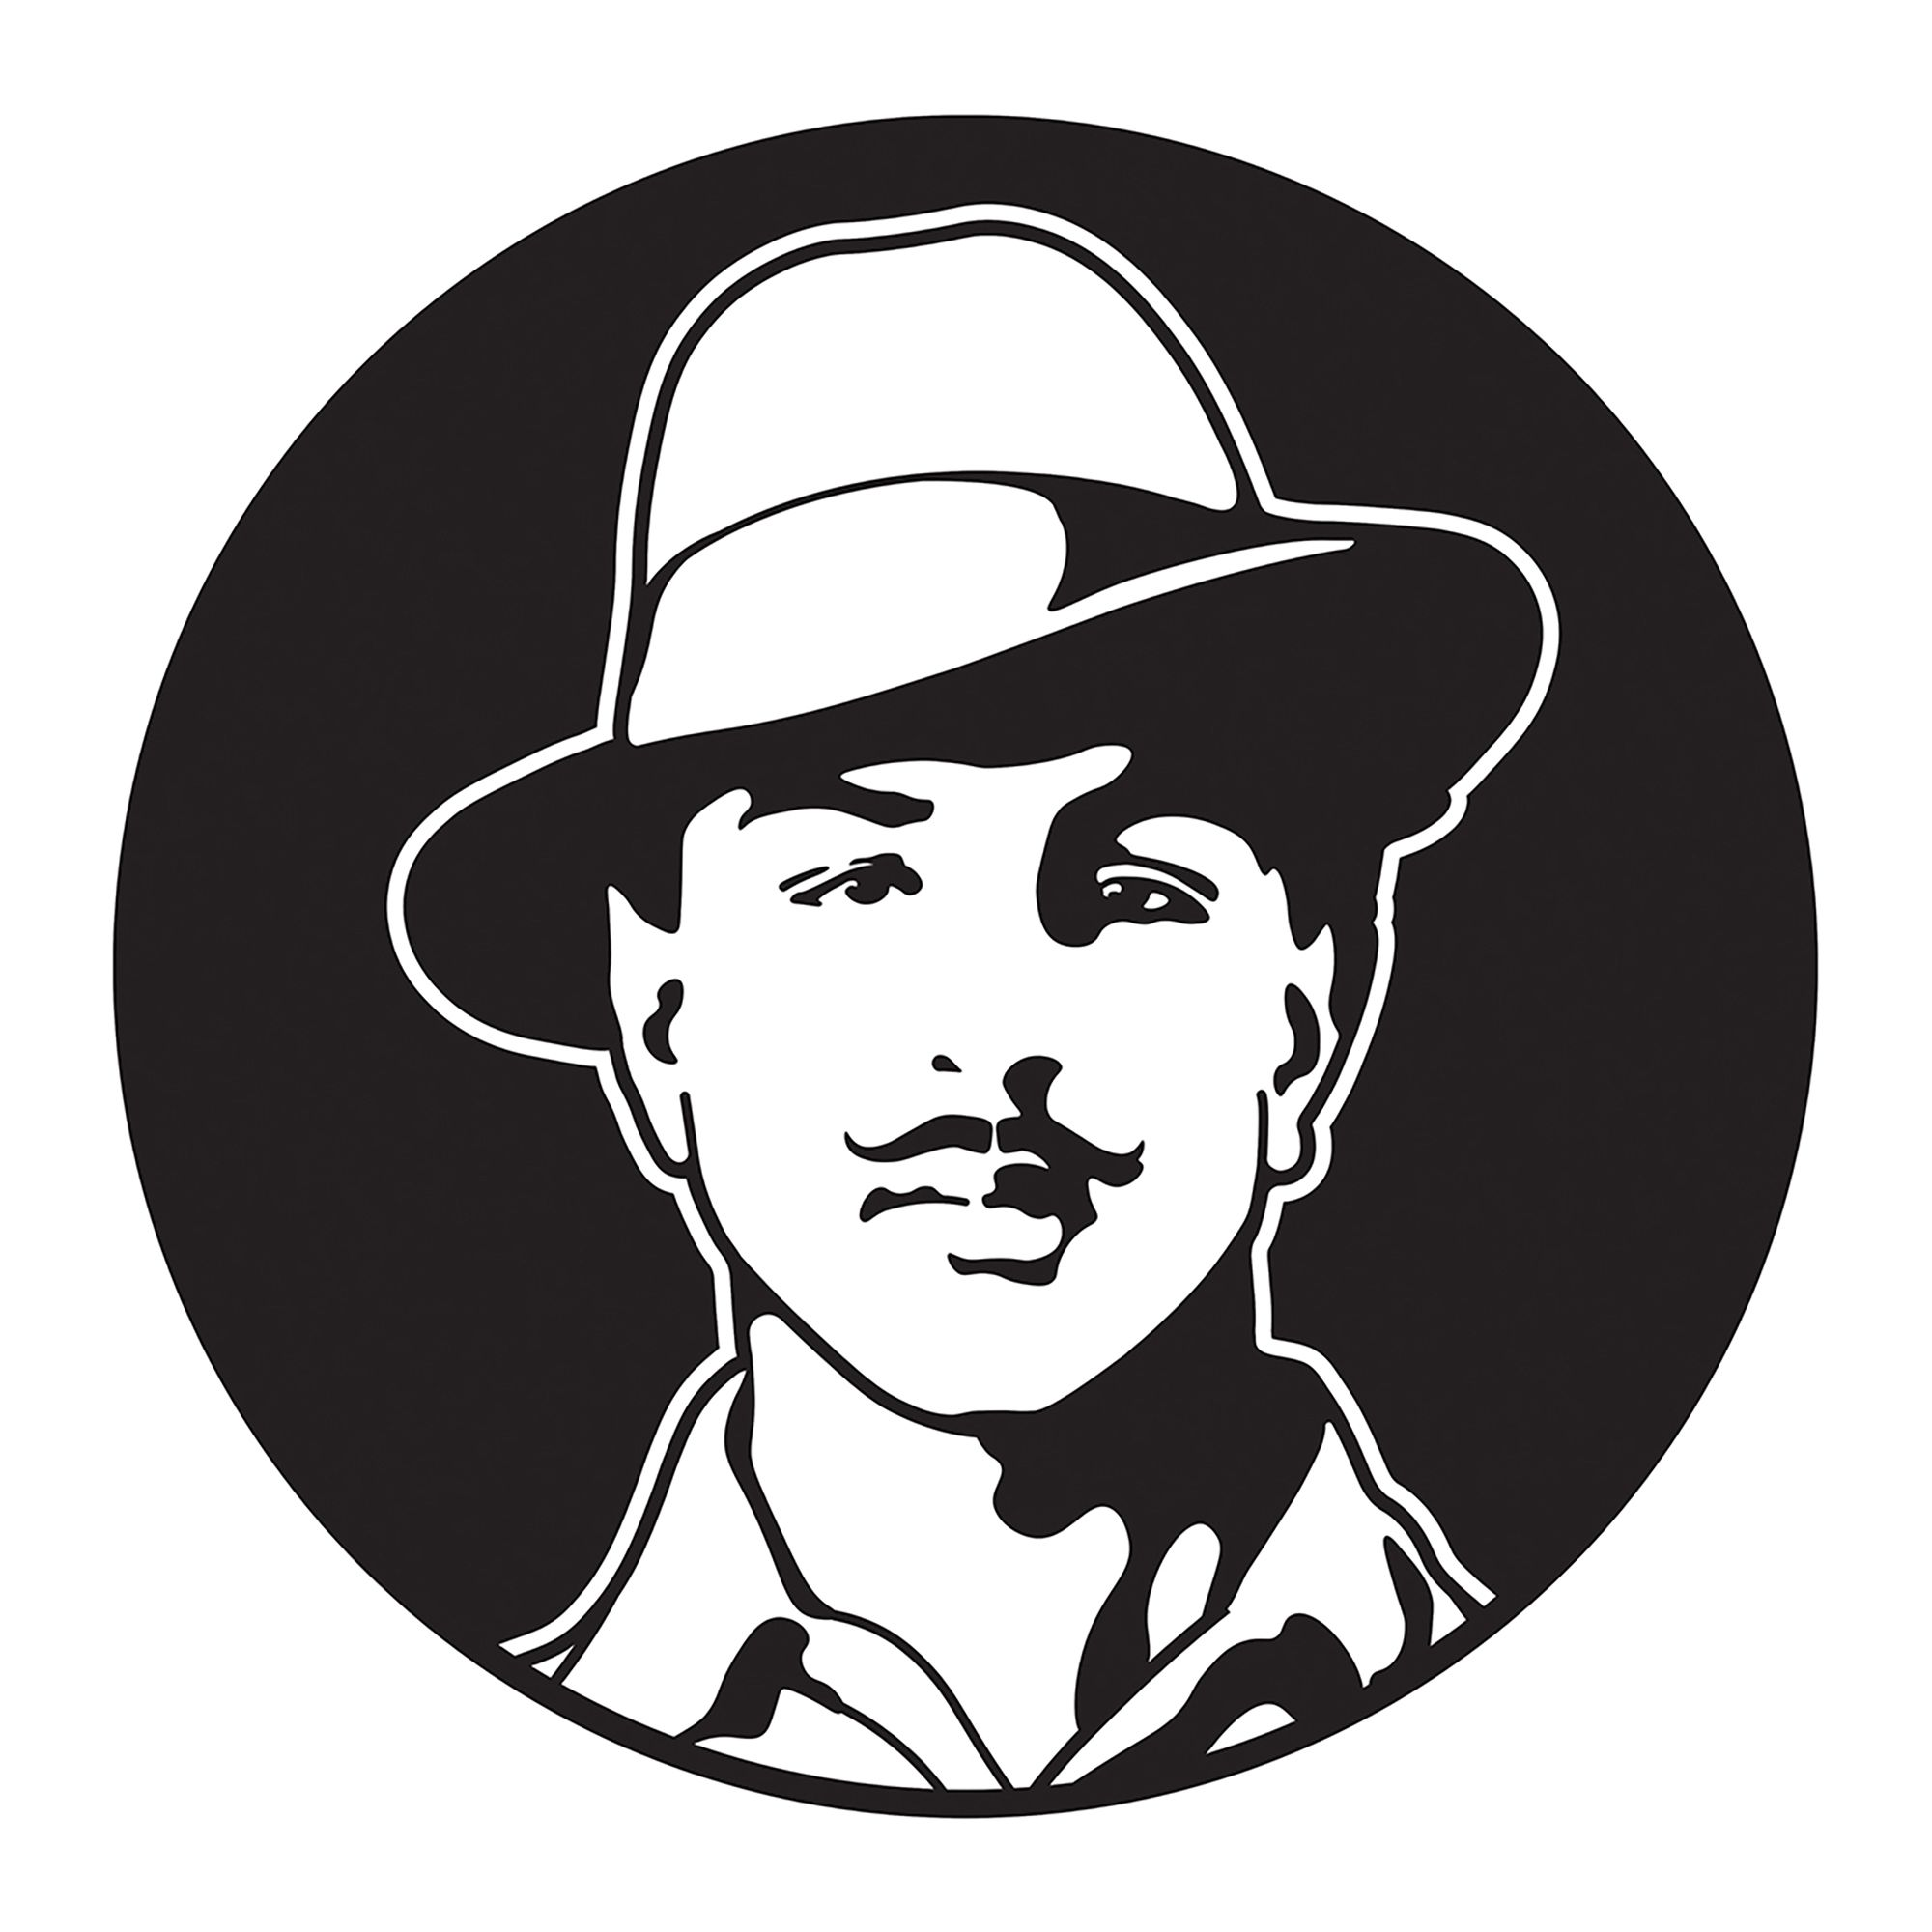 Bhagat Singh was an Indian revolutionary socialist who was